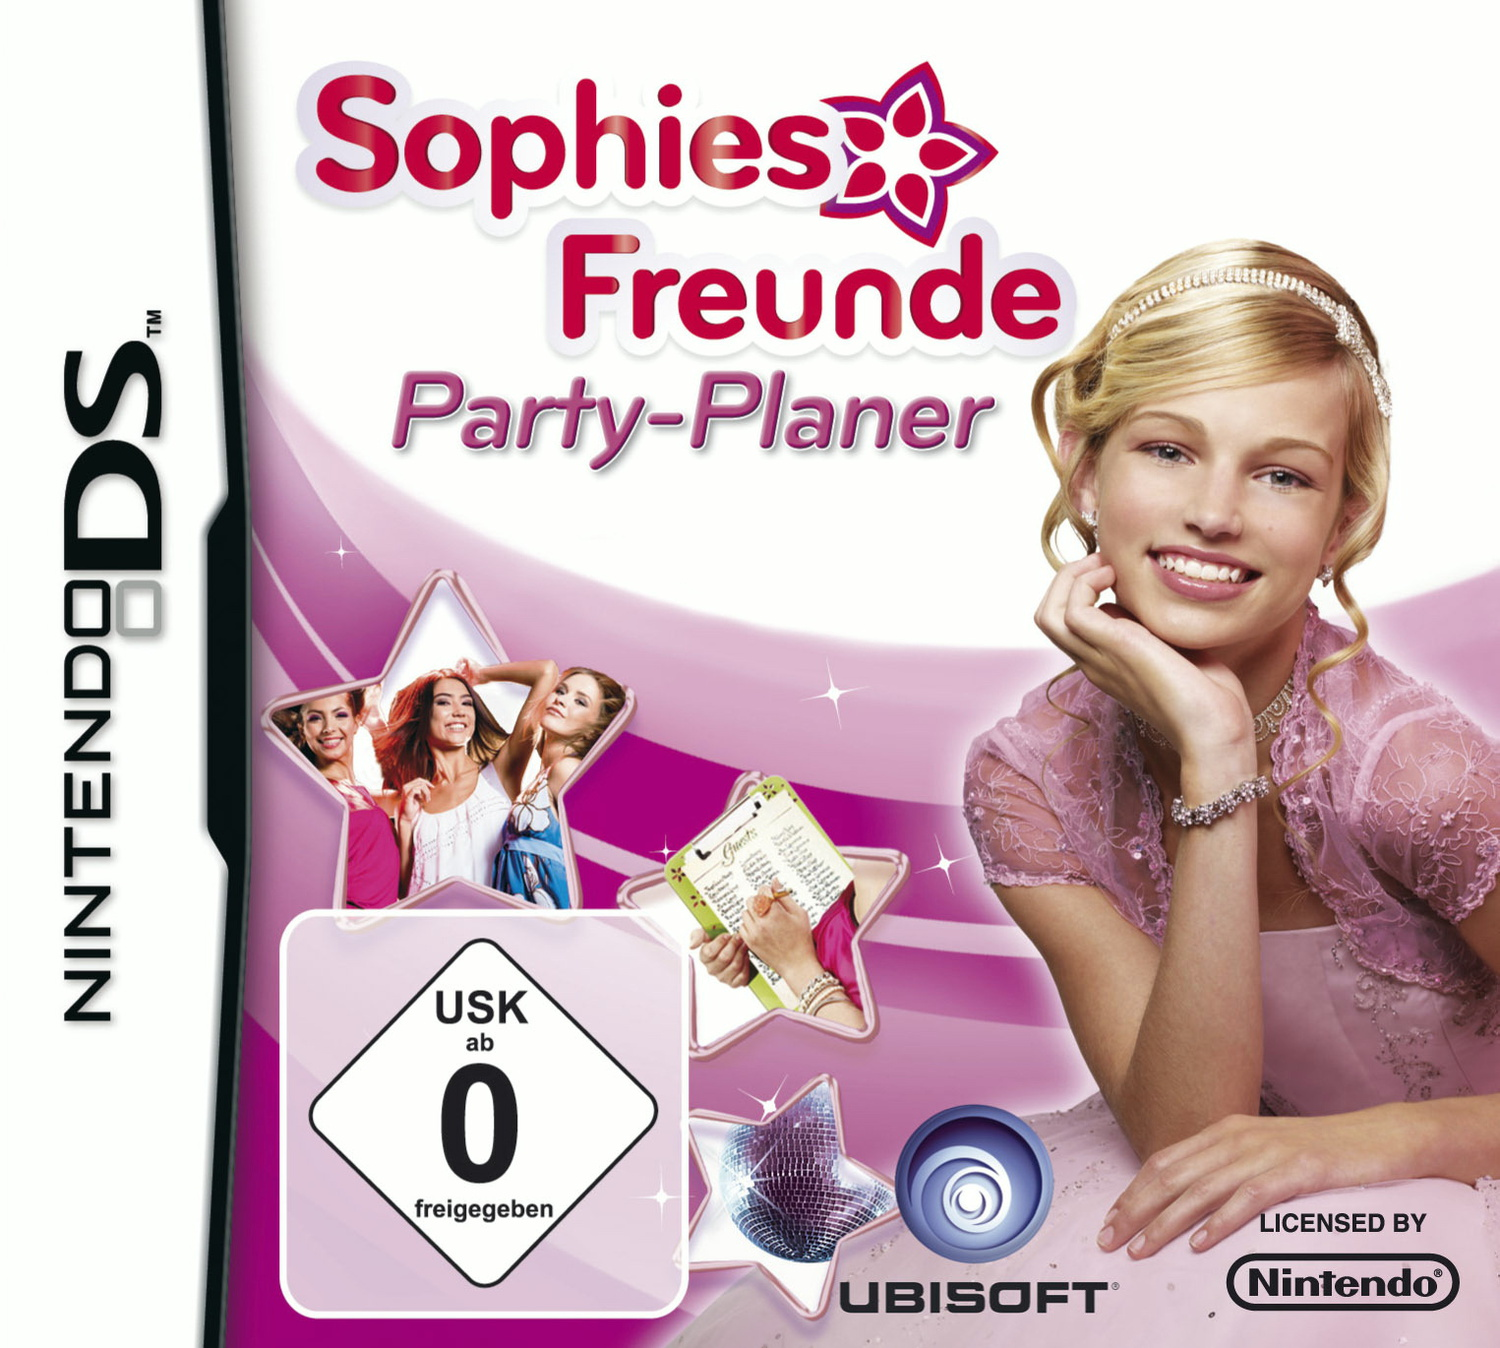 Sophies Freunde: Party-Planer